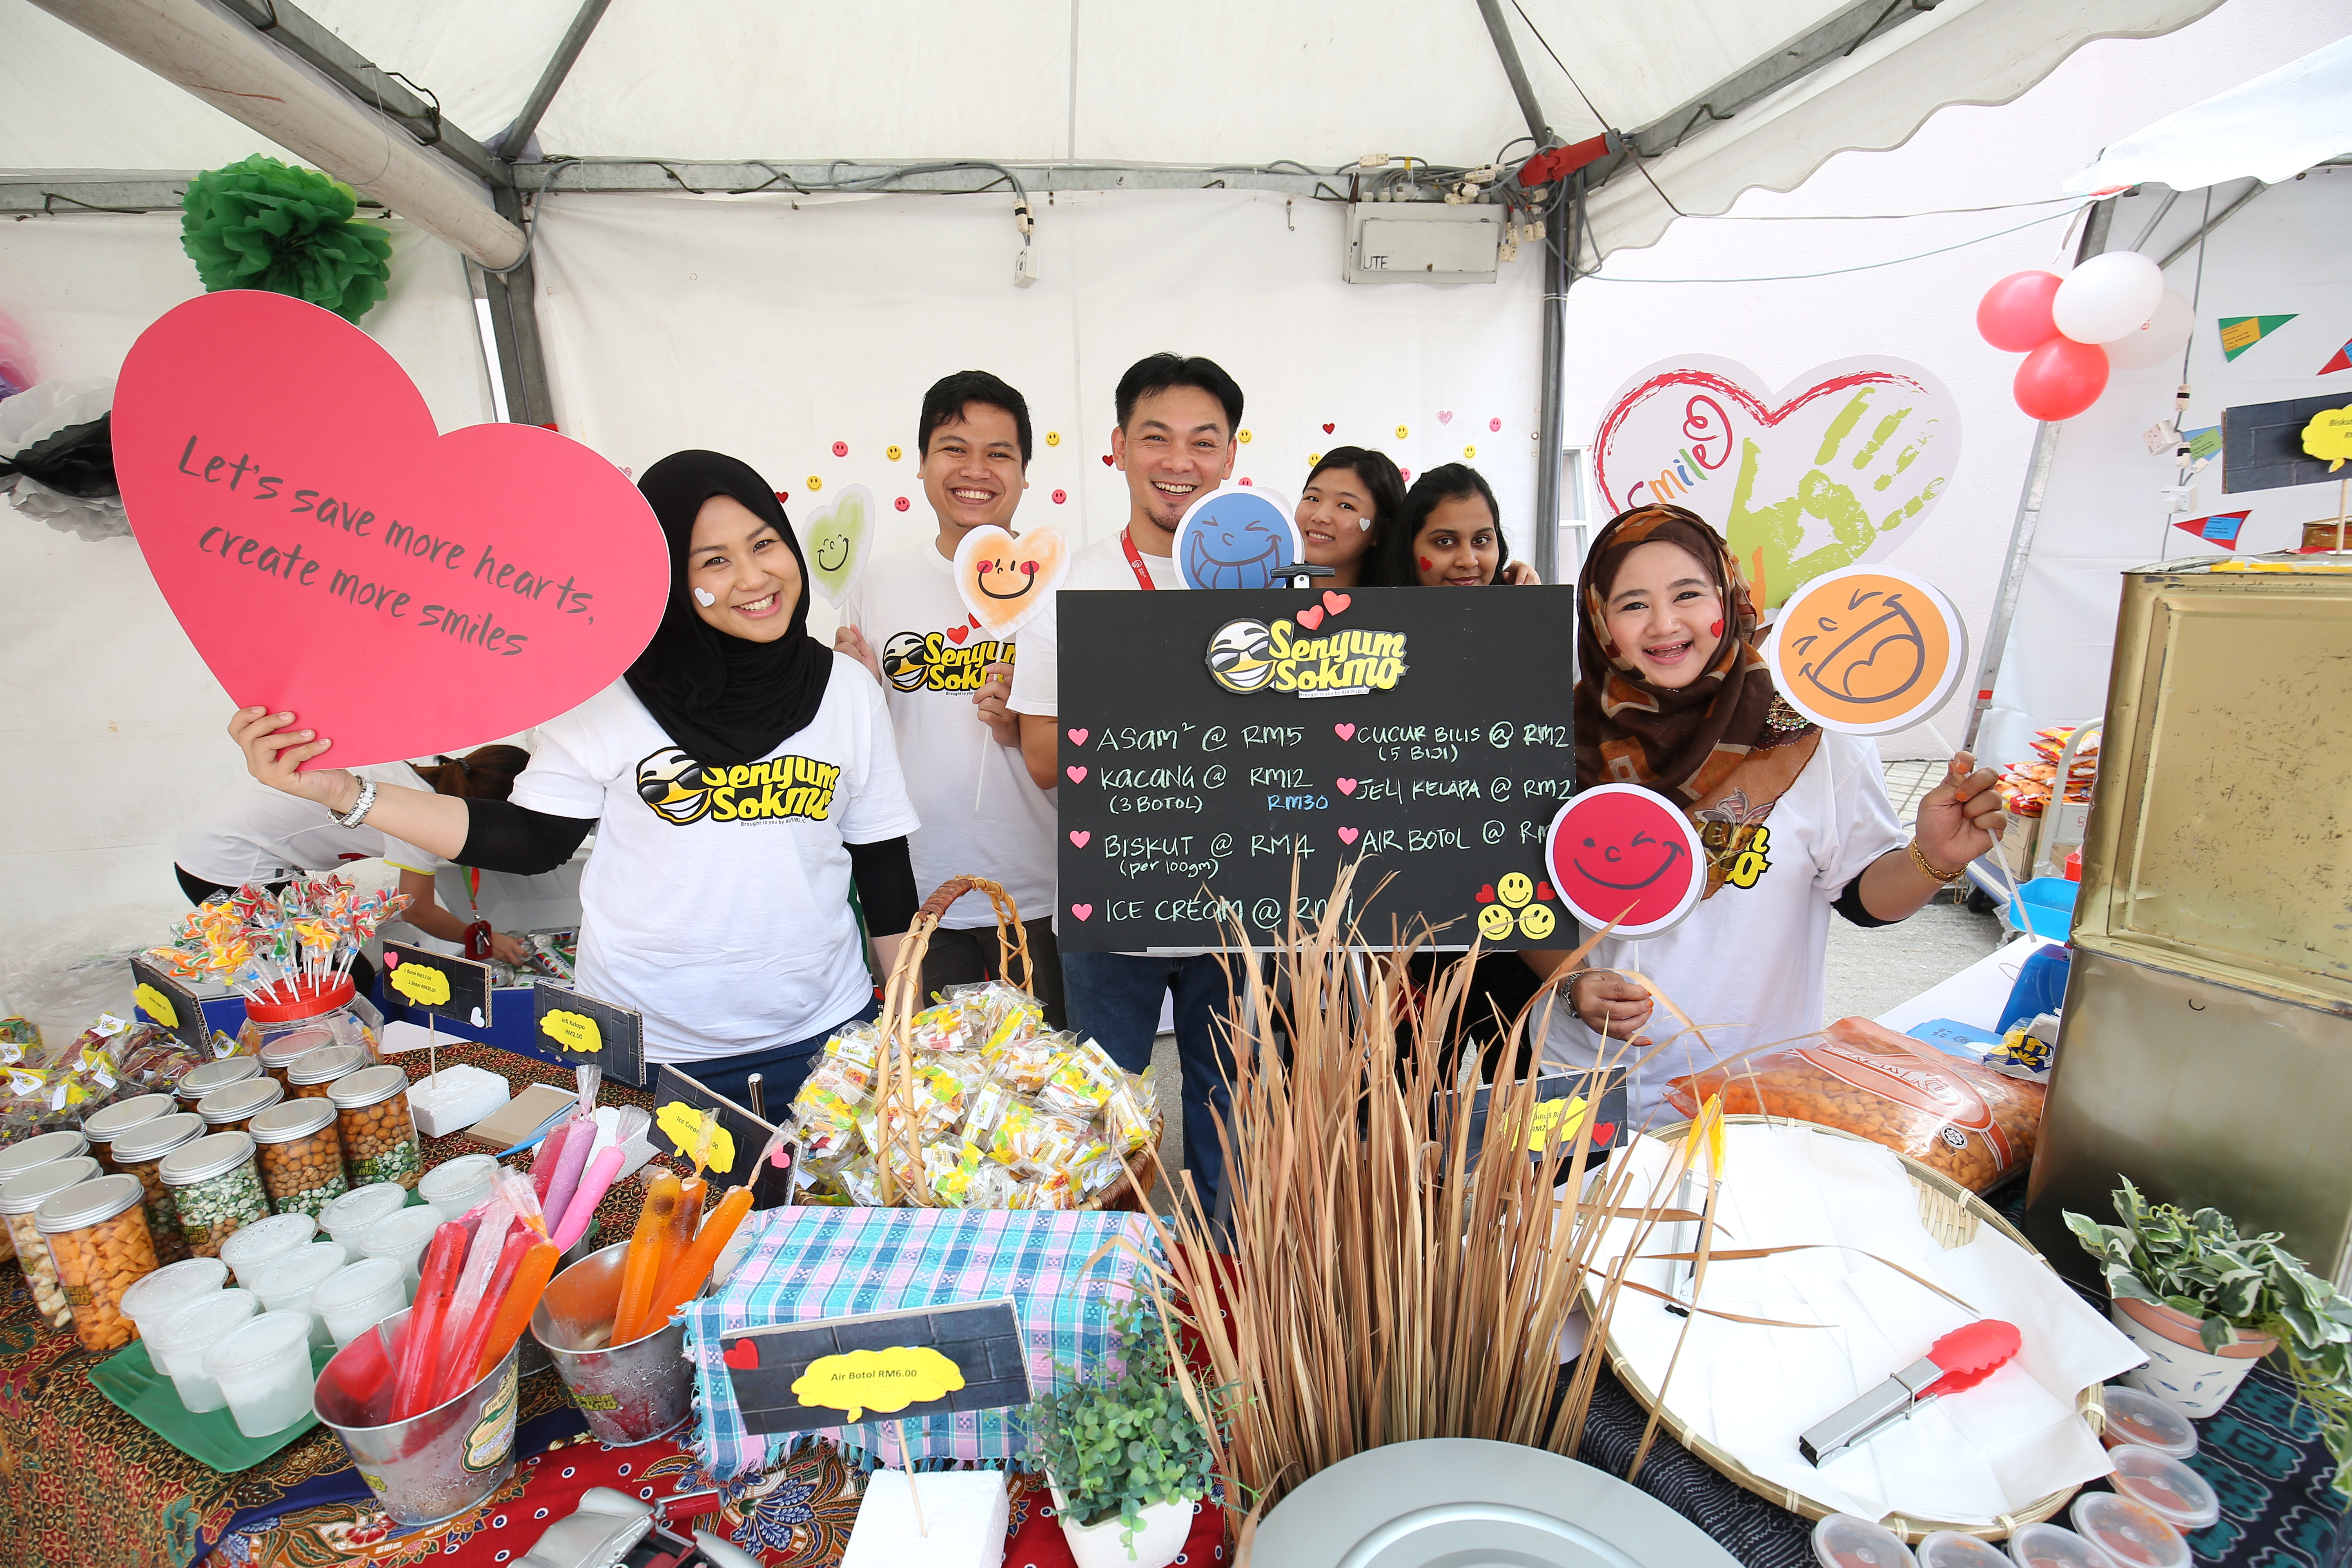 One of the booths during the AIA Touching Lives Charity Bazaar set up by AIA employees